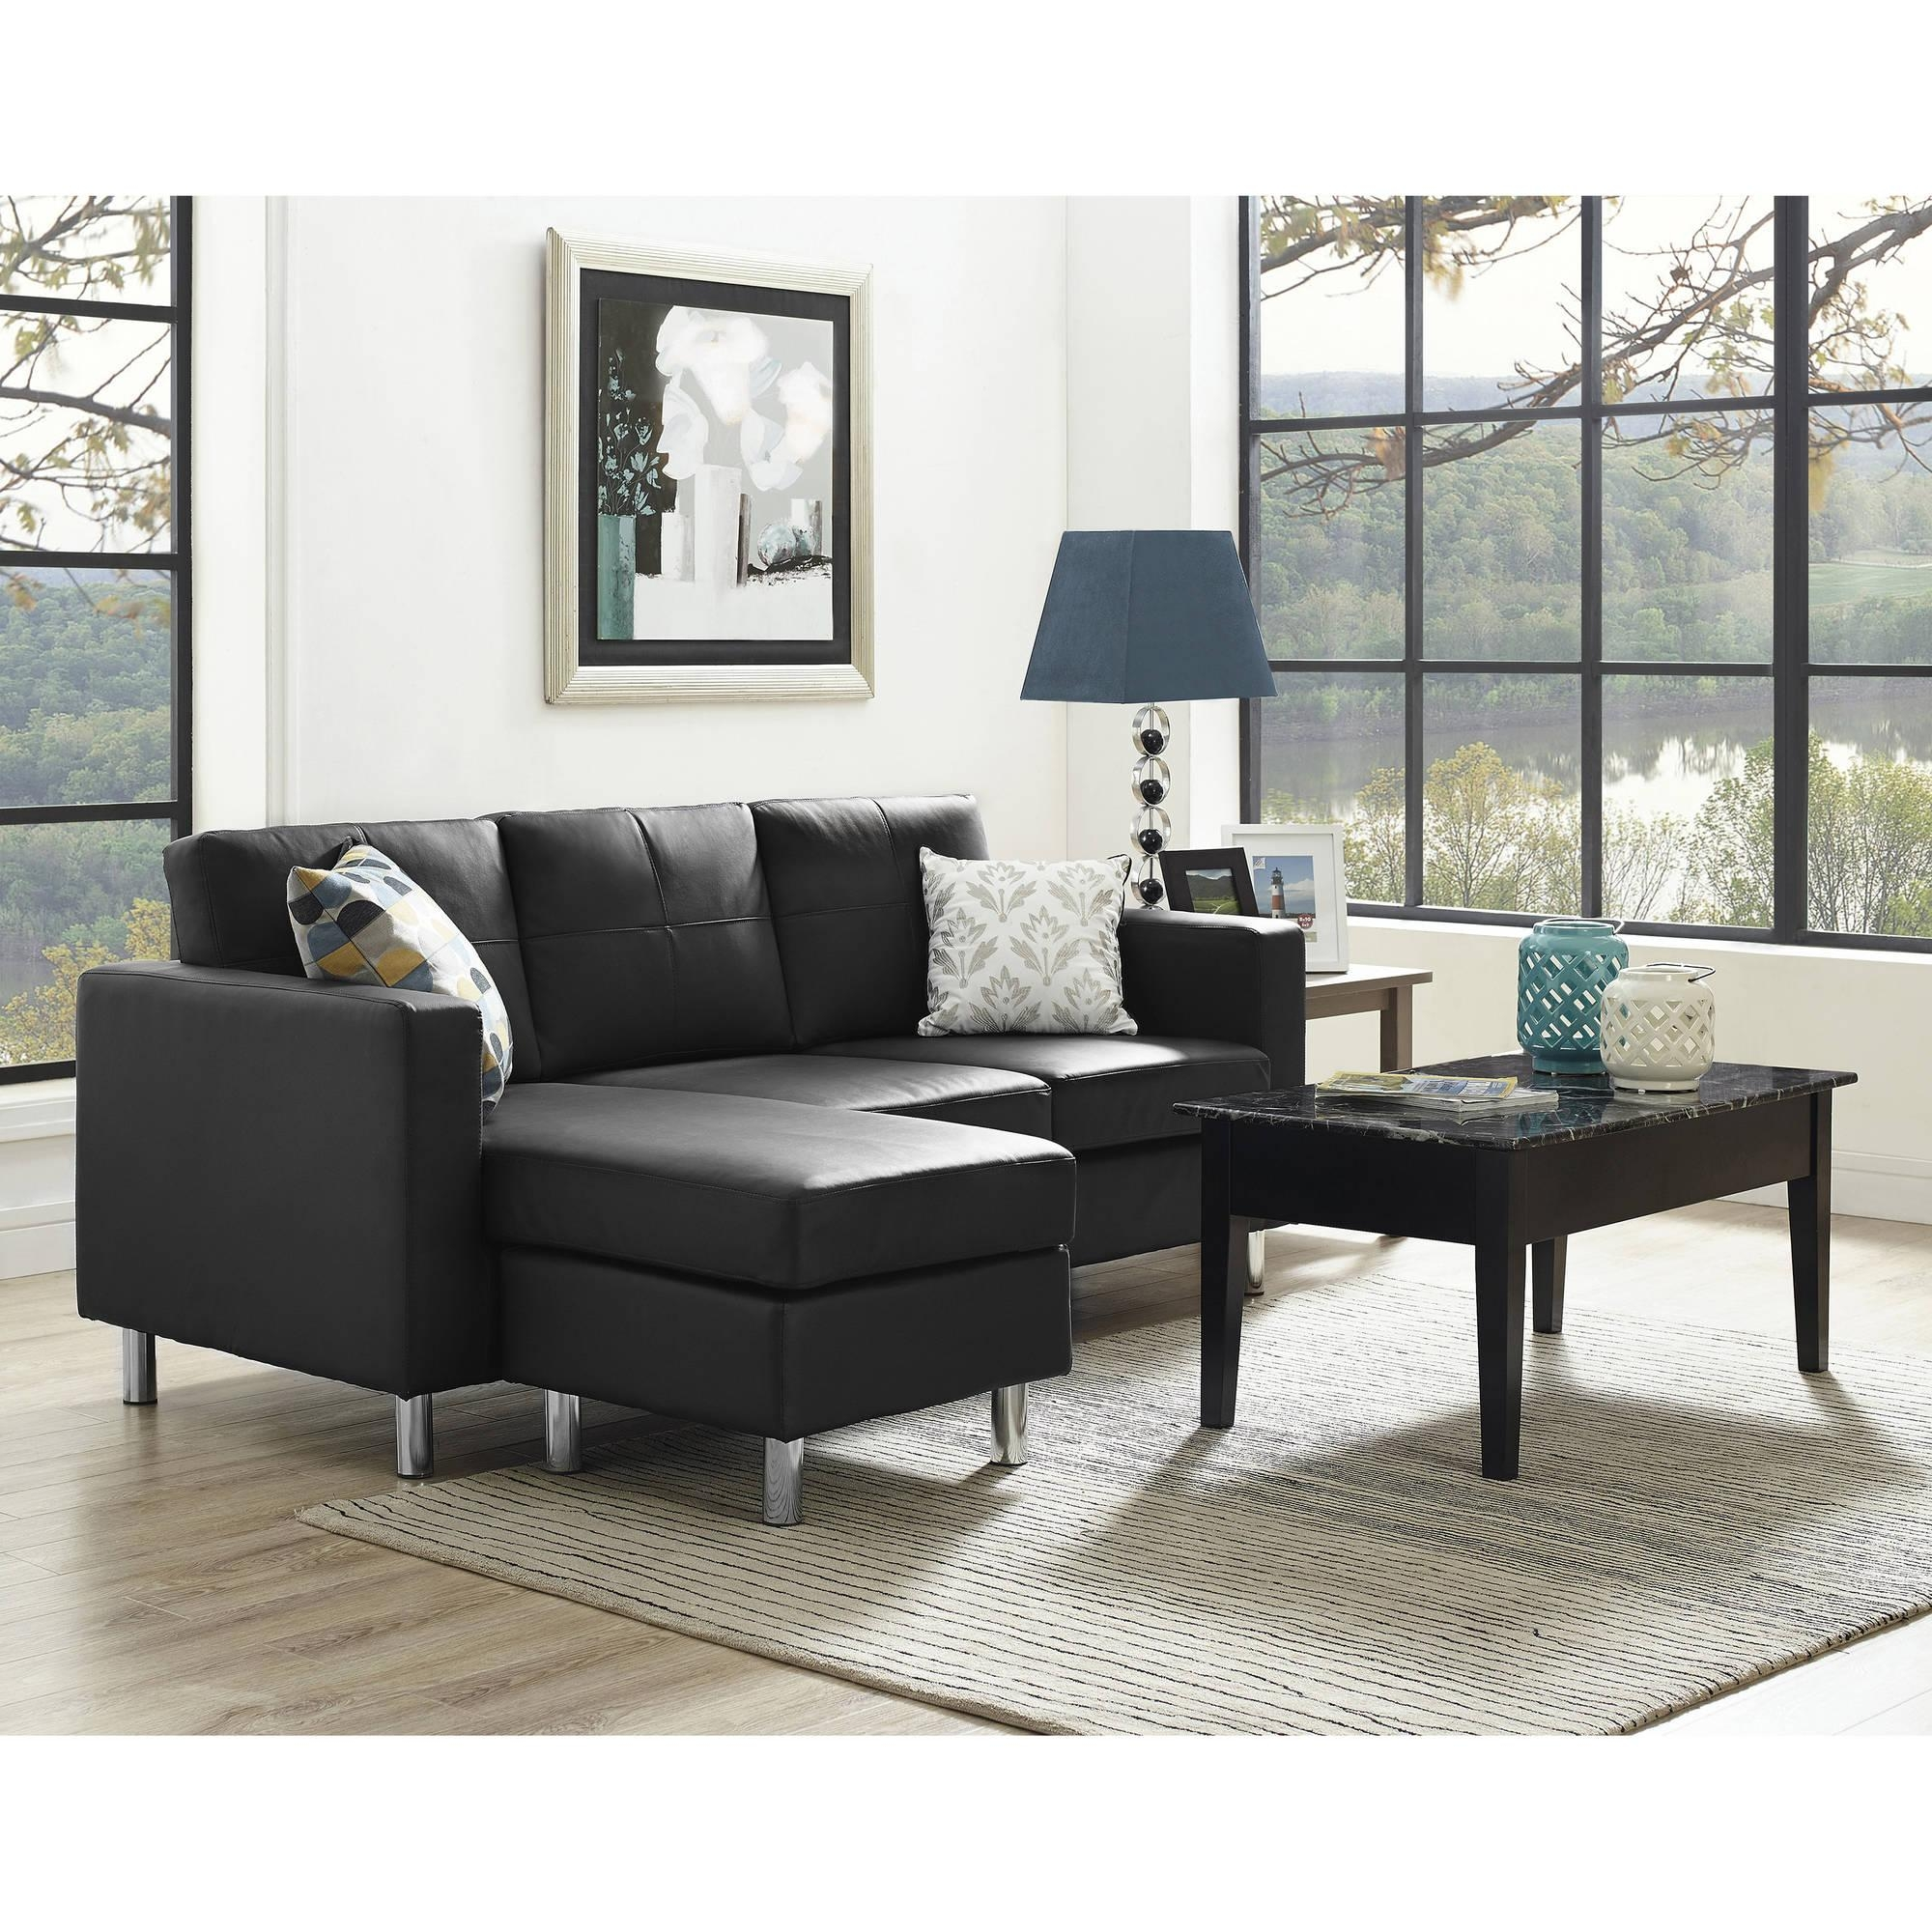 Dorel Living Small Spaces Configurable Sectional Sofa, Multiple Intended For Small Sectional Sofas For Small Spaces (Image 10 of 20)